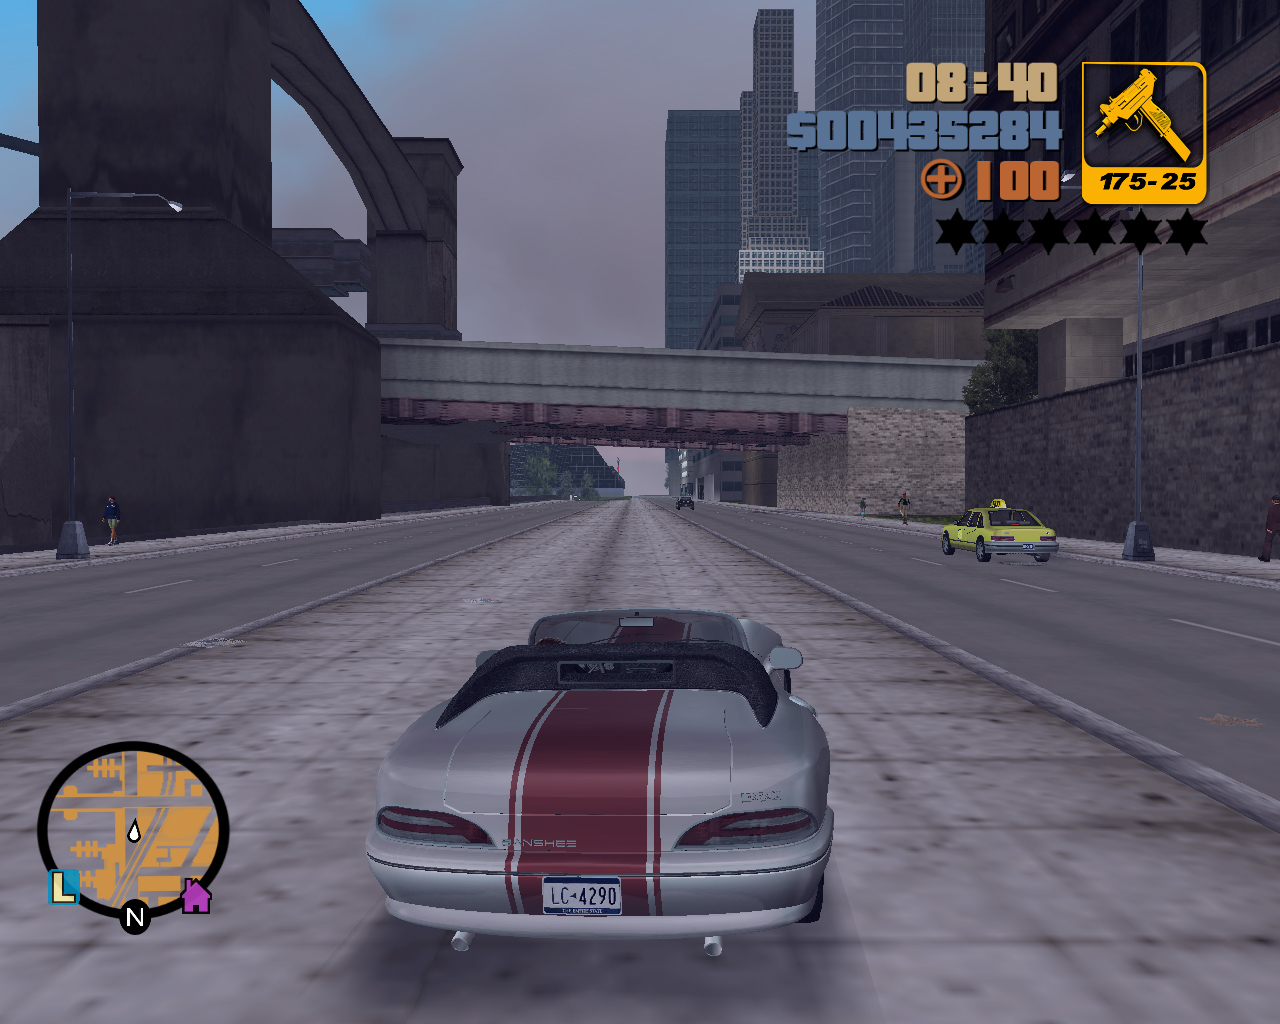 The gta place gta3hdvehicles tri pack iii the gta place grand theft auto news forums information screenshots guides cheats voltagebd Gallery